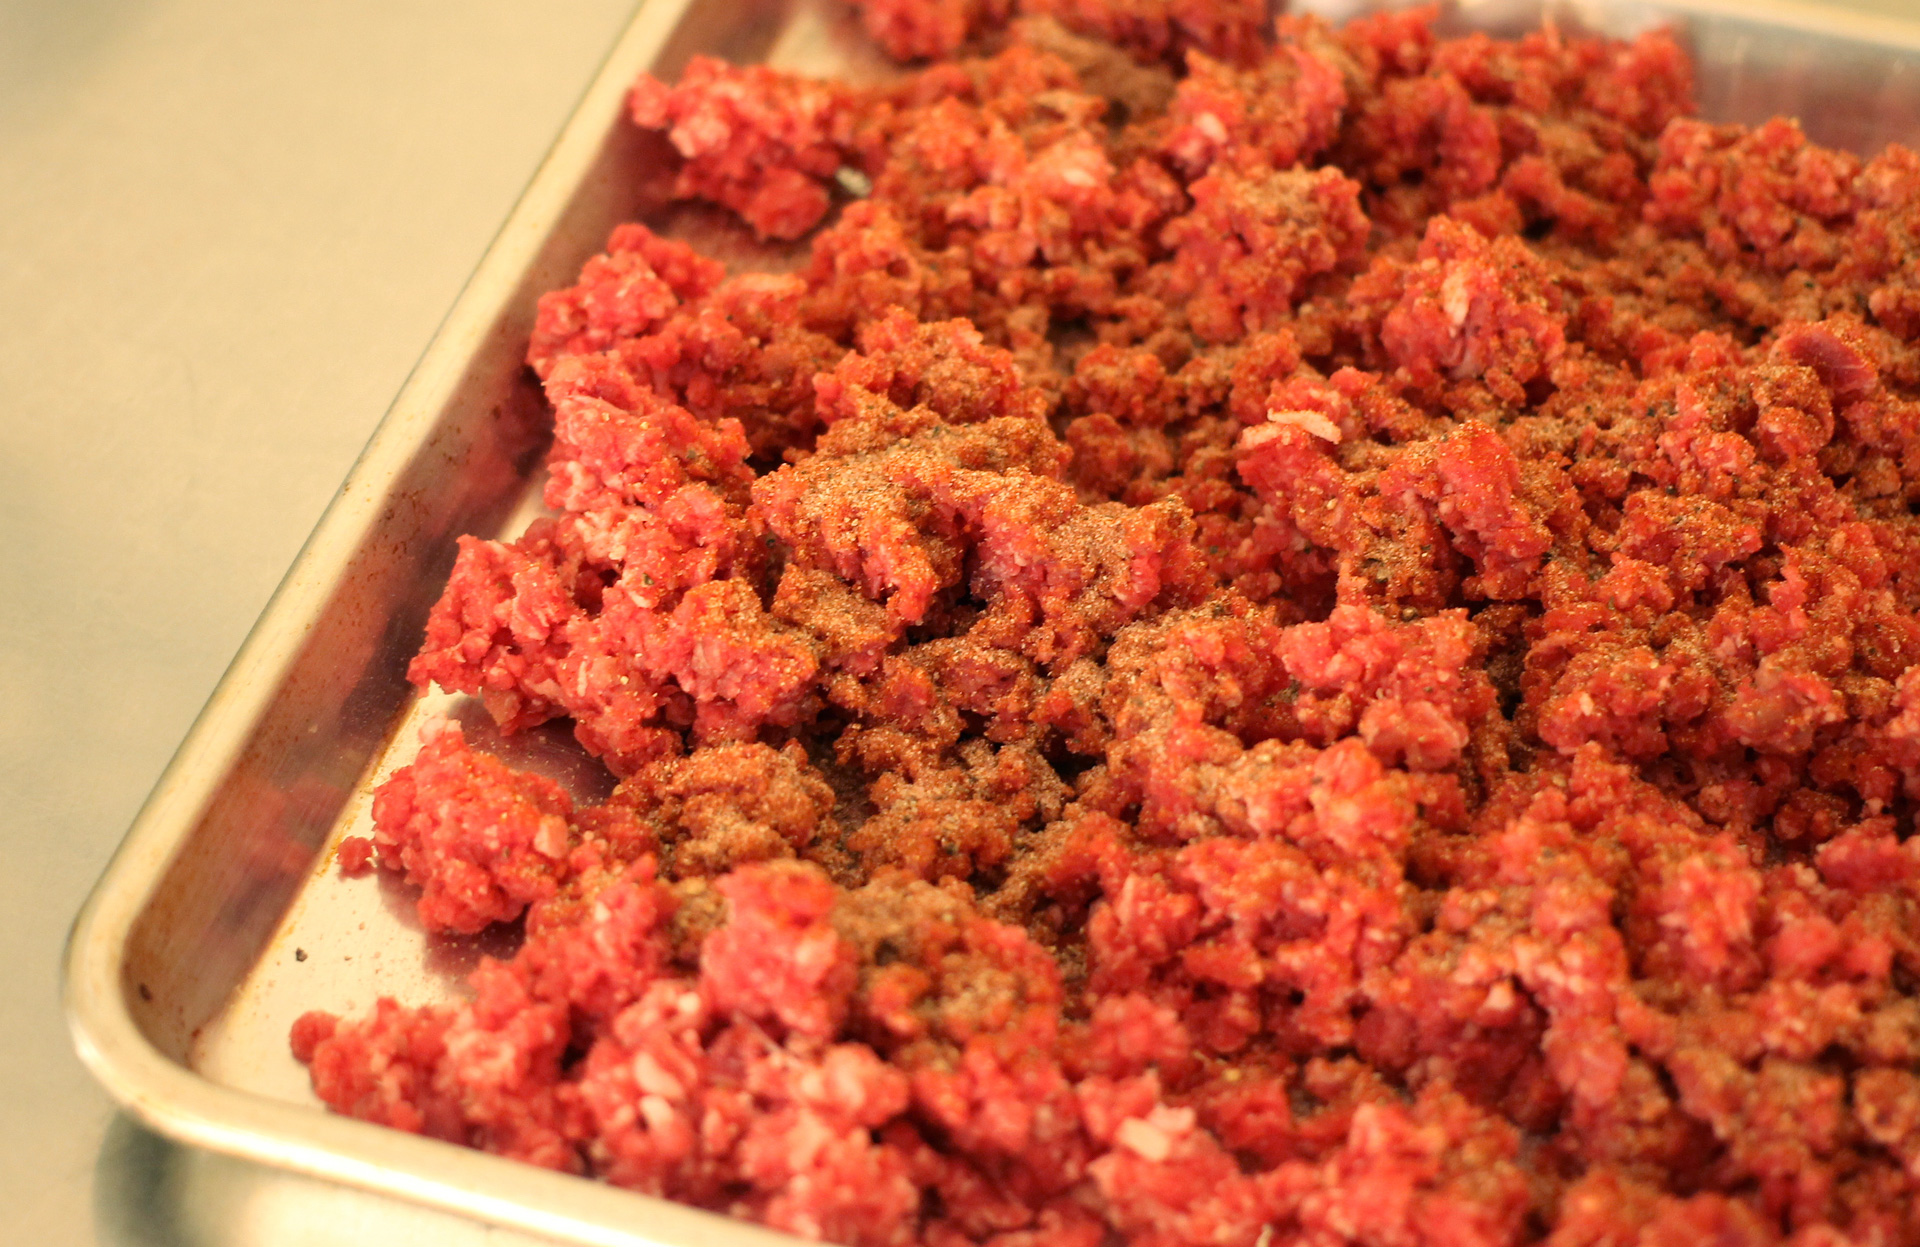 Ground beef with salt, paprika, pepper, garlic powder, and onion powder — no nitrates.